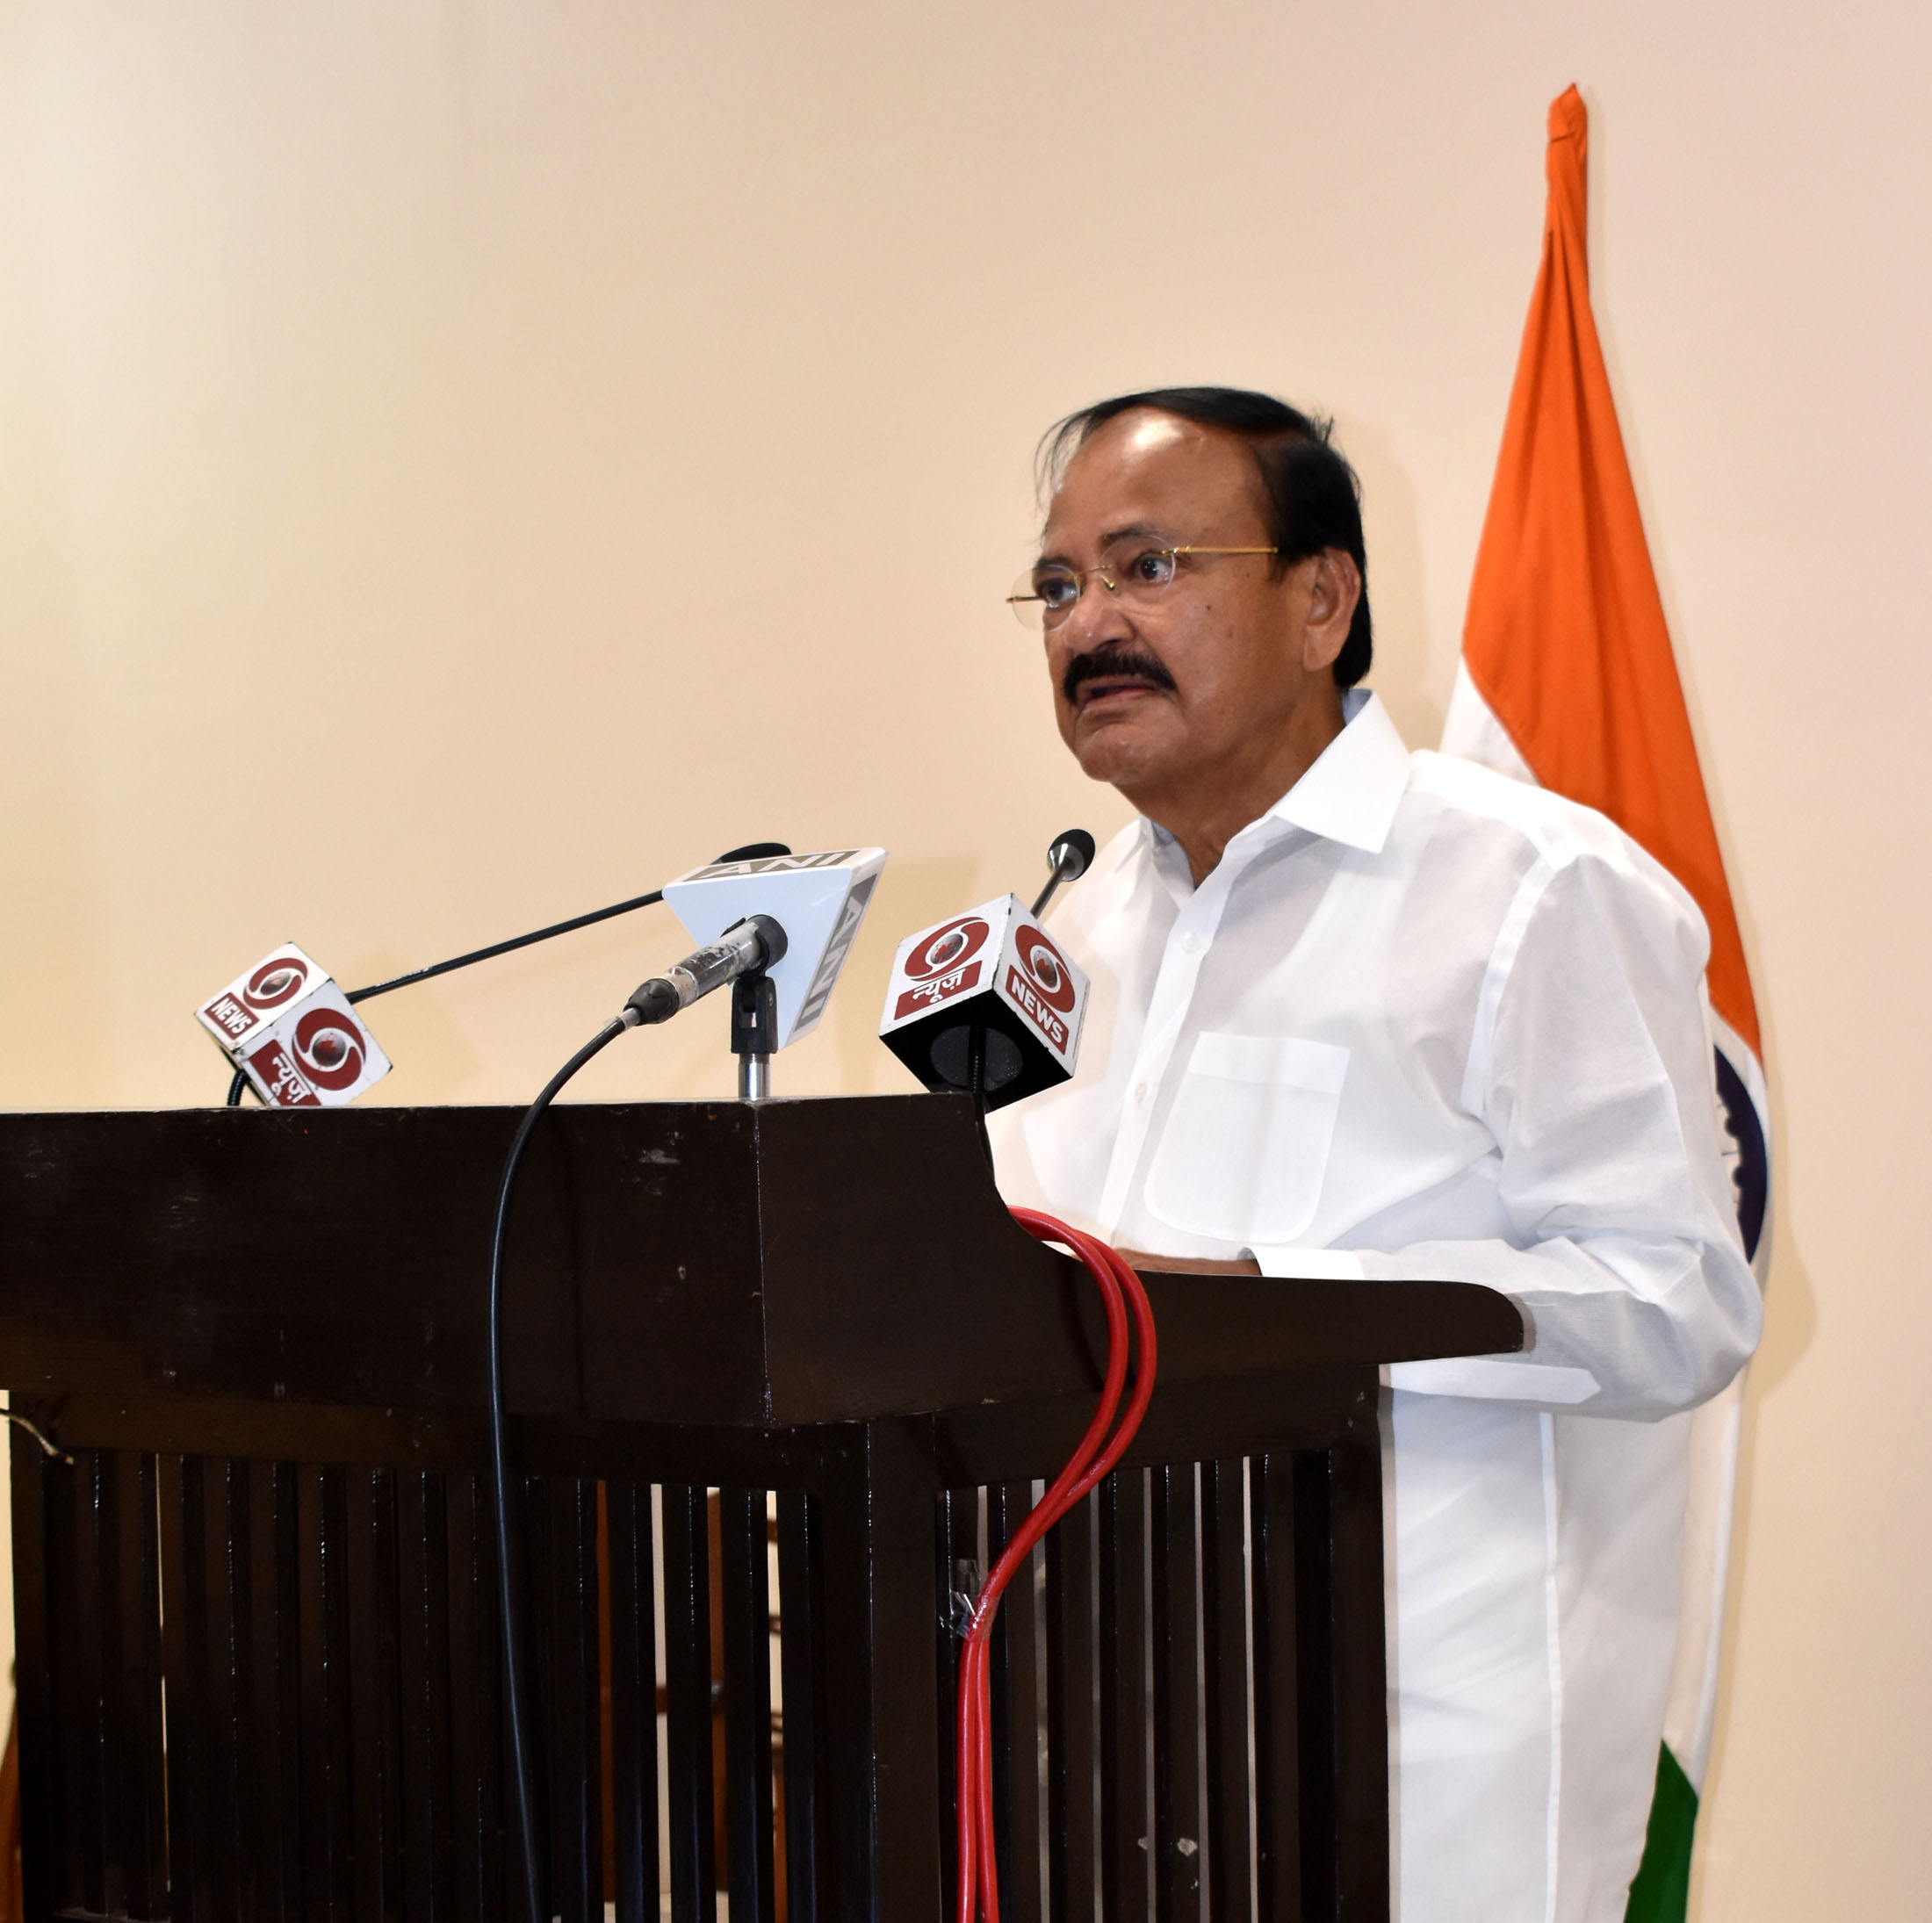 The Vice President, Shri M. Venkaiah Naidu virtually addressing the Valedictory and Award Session of Global Bio India-2021 from Chennai on 03 March, 2021.